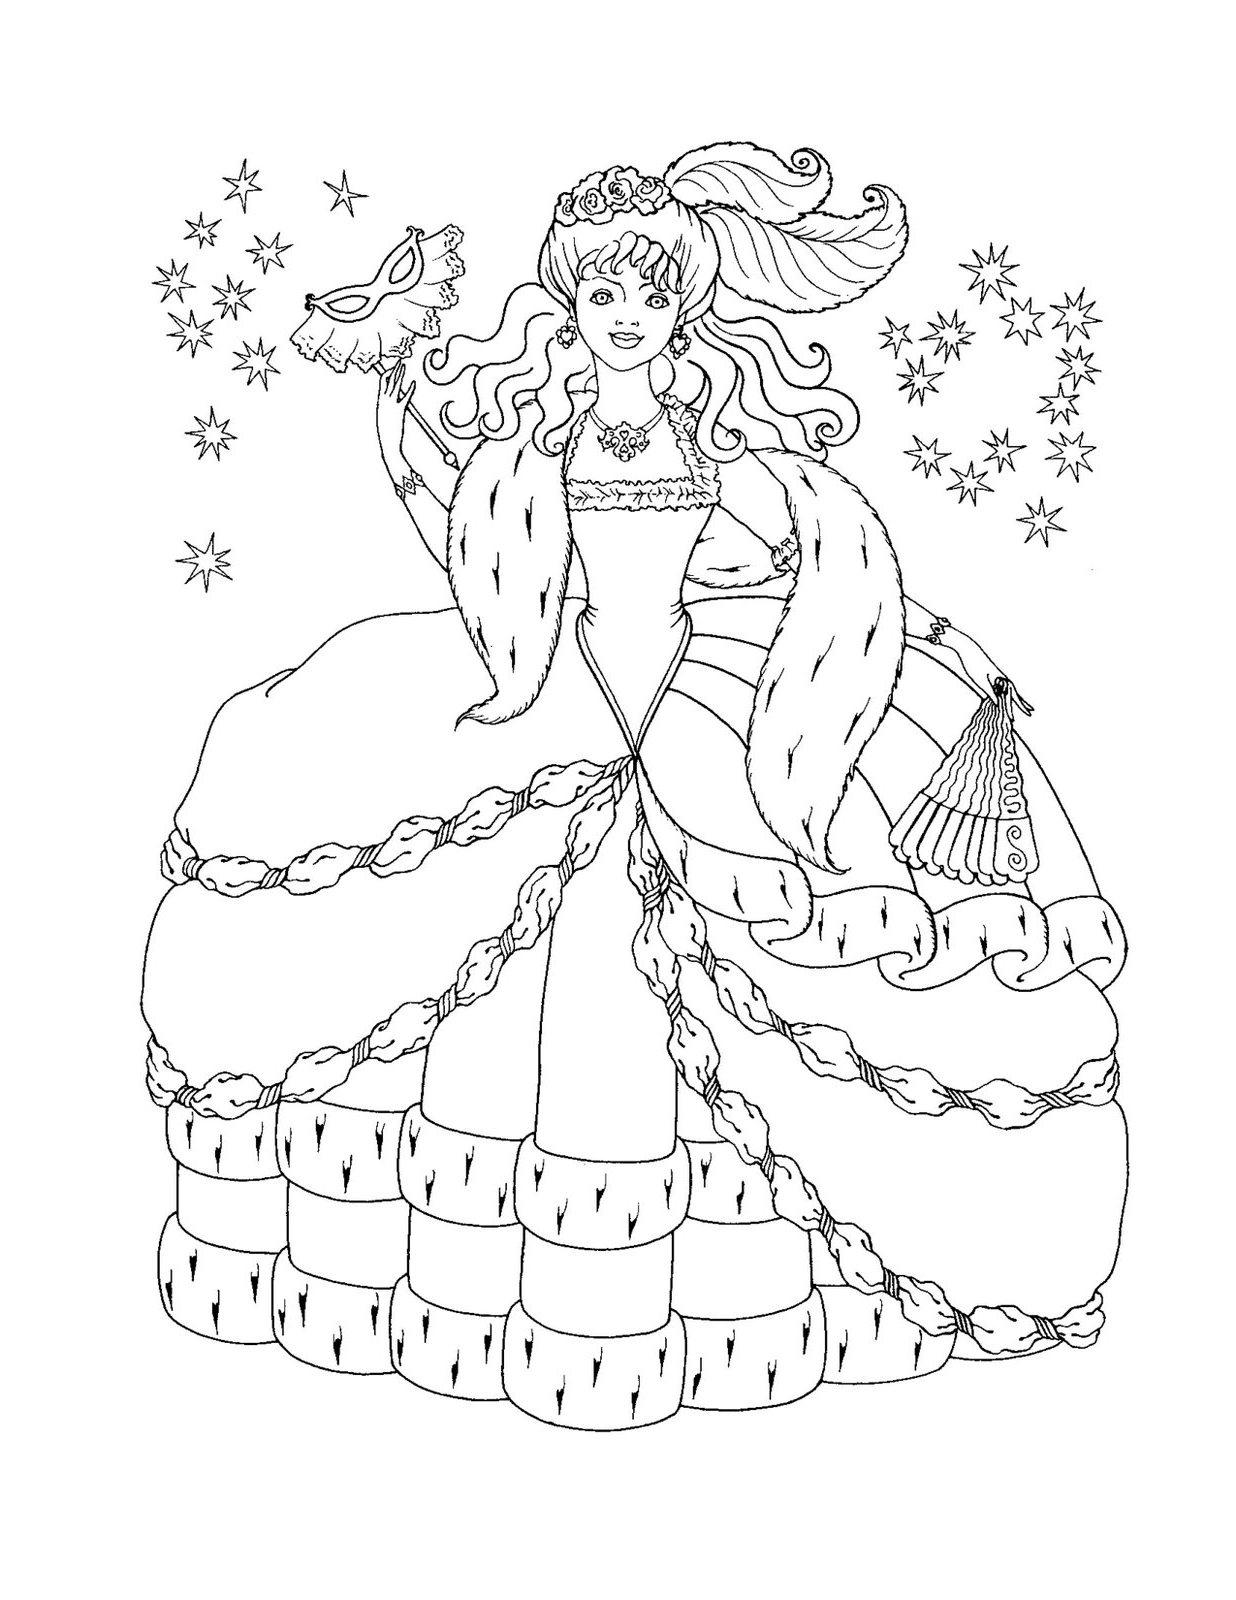 Free Printable Disney Princess Coloring Pages For Kids Free Princess Coloring Pages Free Coloring Sheets